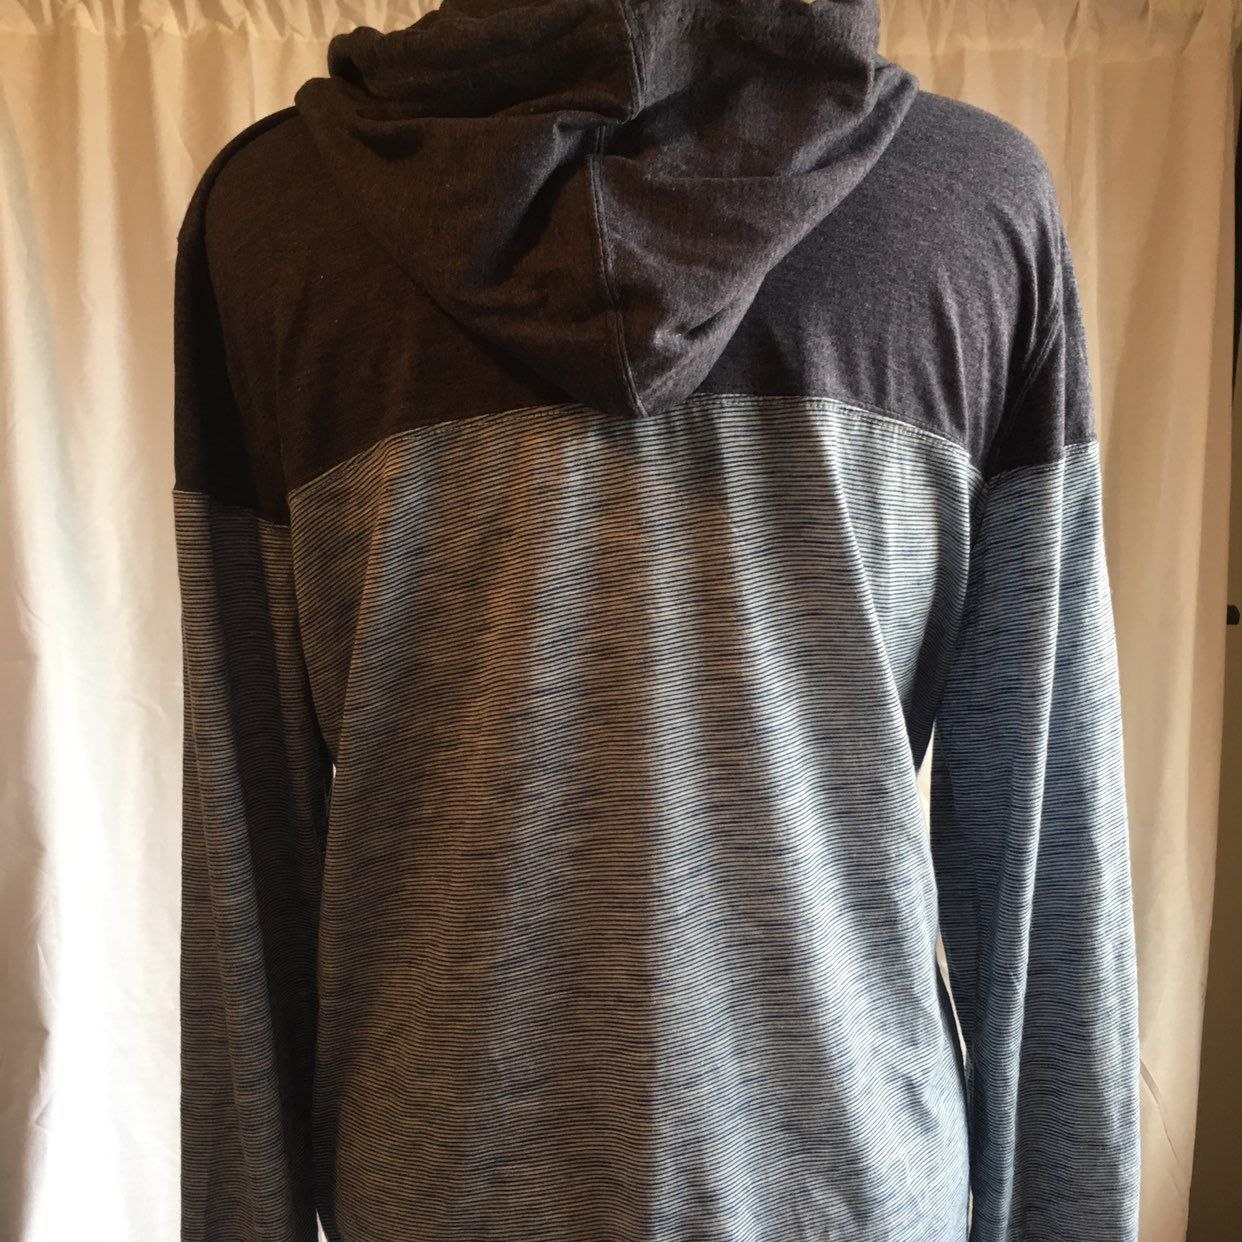 Lightweight Hooded Sweater - Mercari: BUY & SELL THINGS YOU LOVE